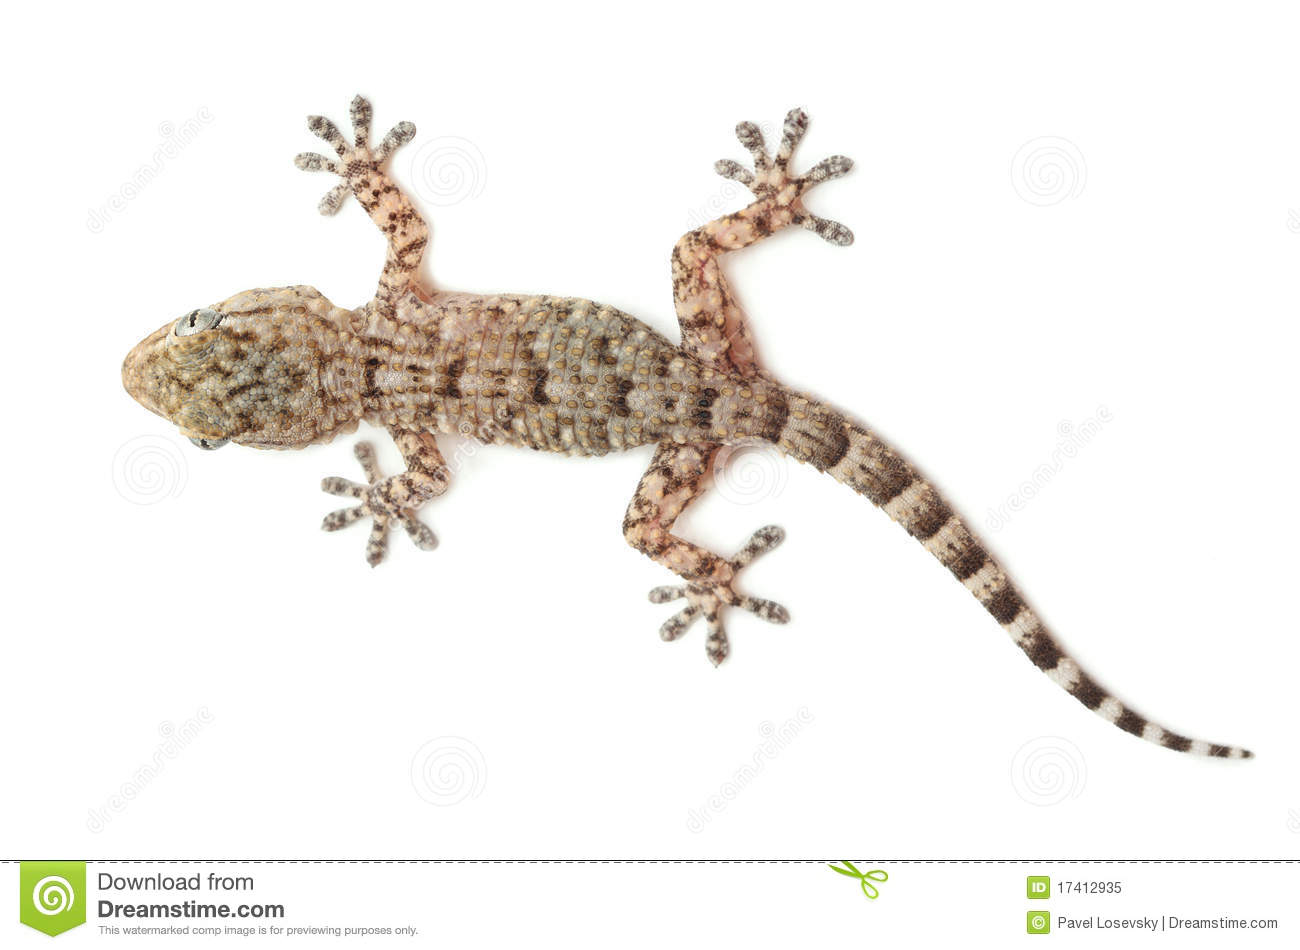 Spotted gecko reptile isolated on white